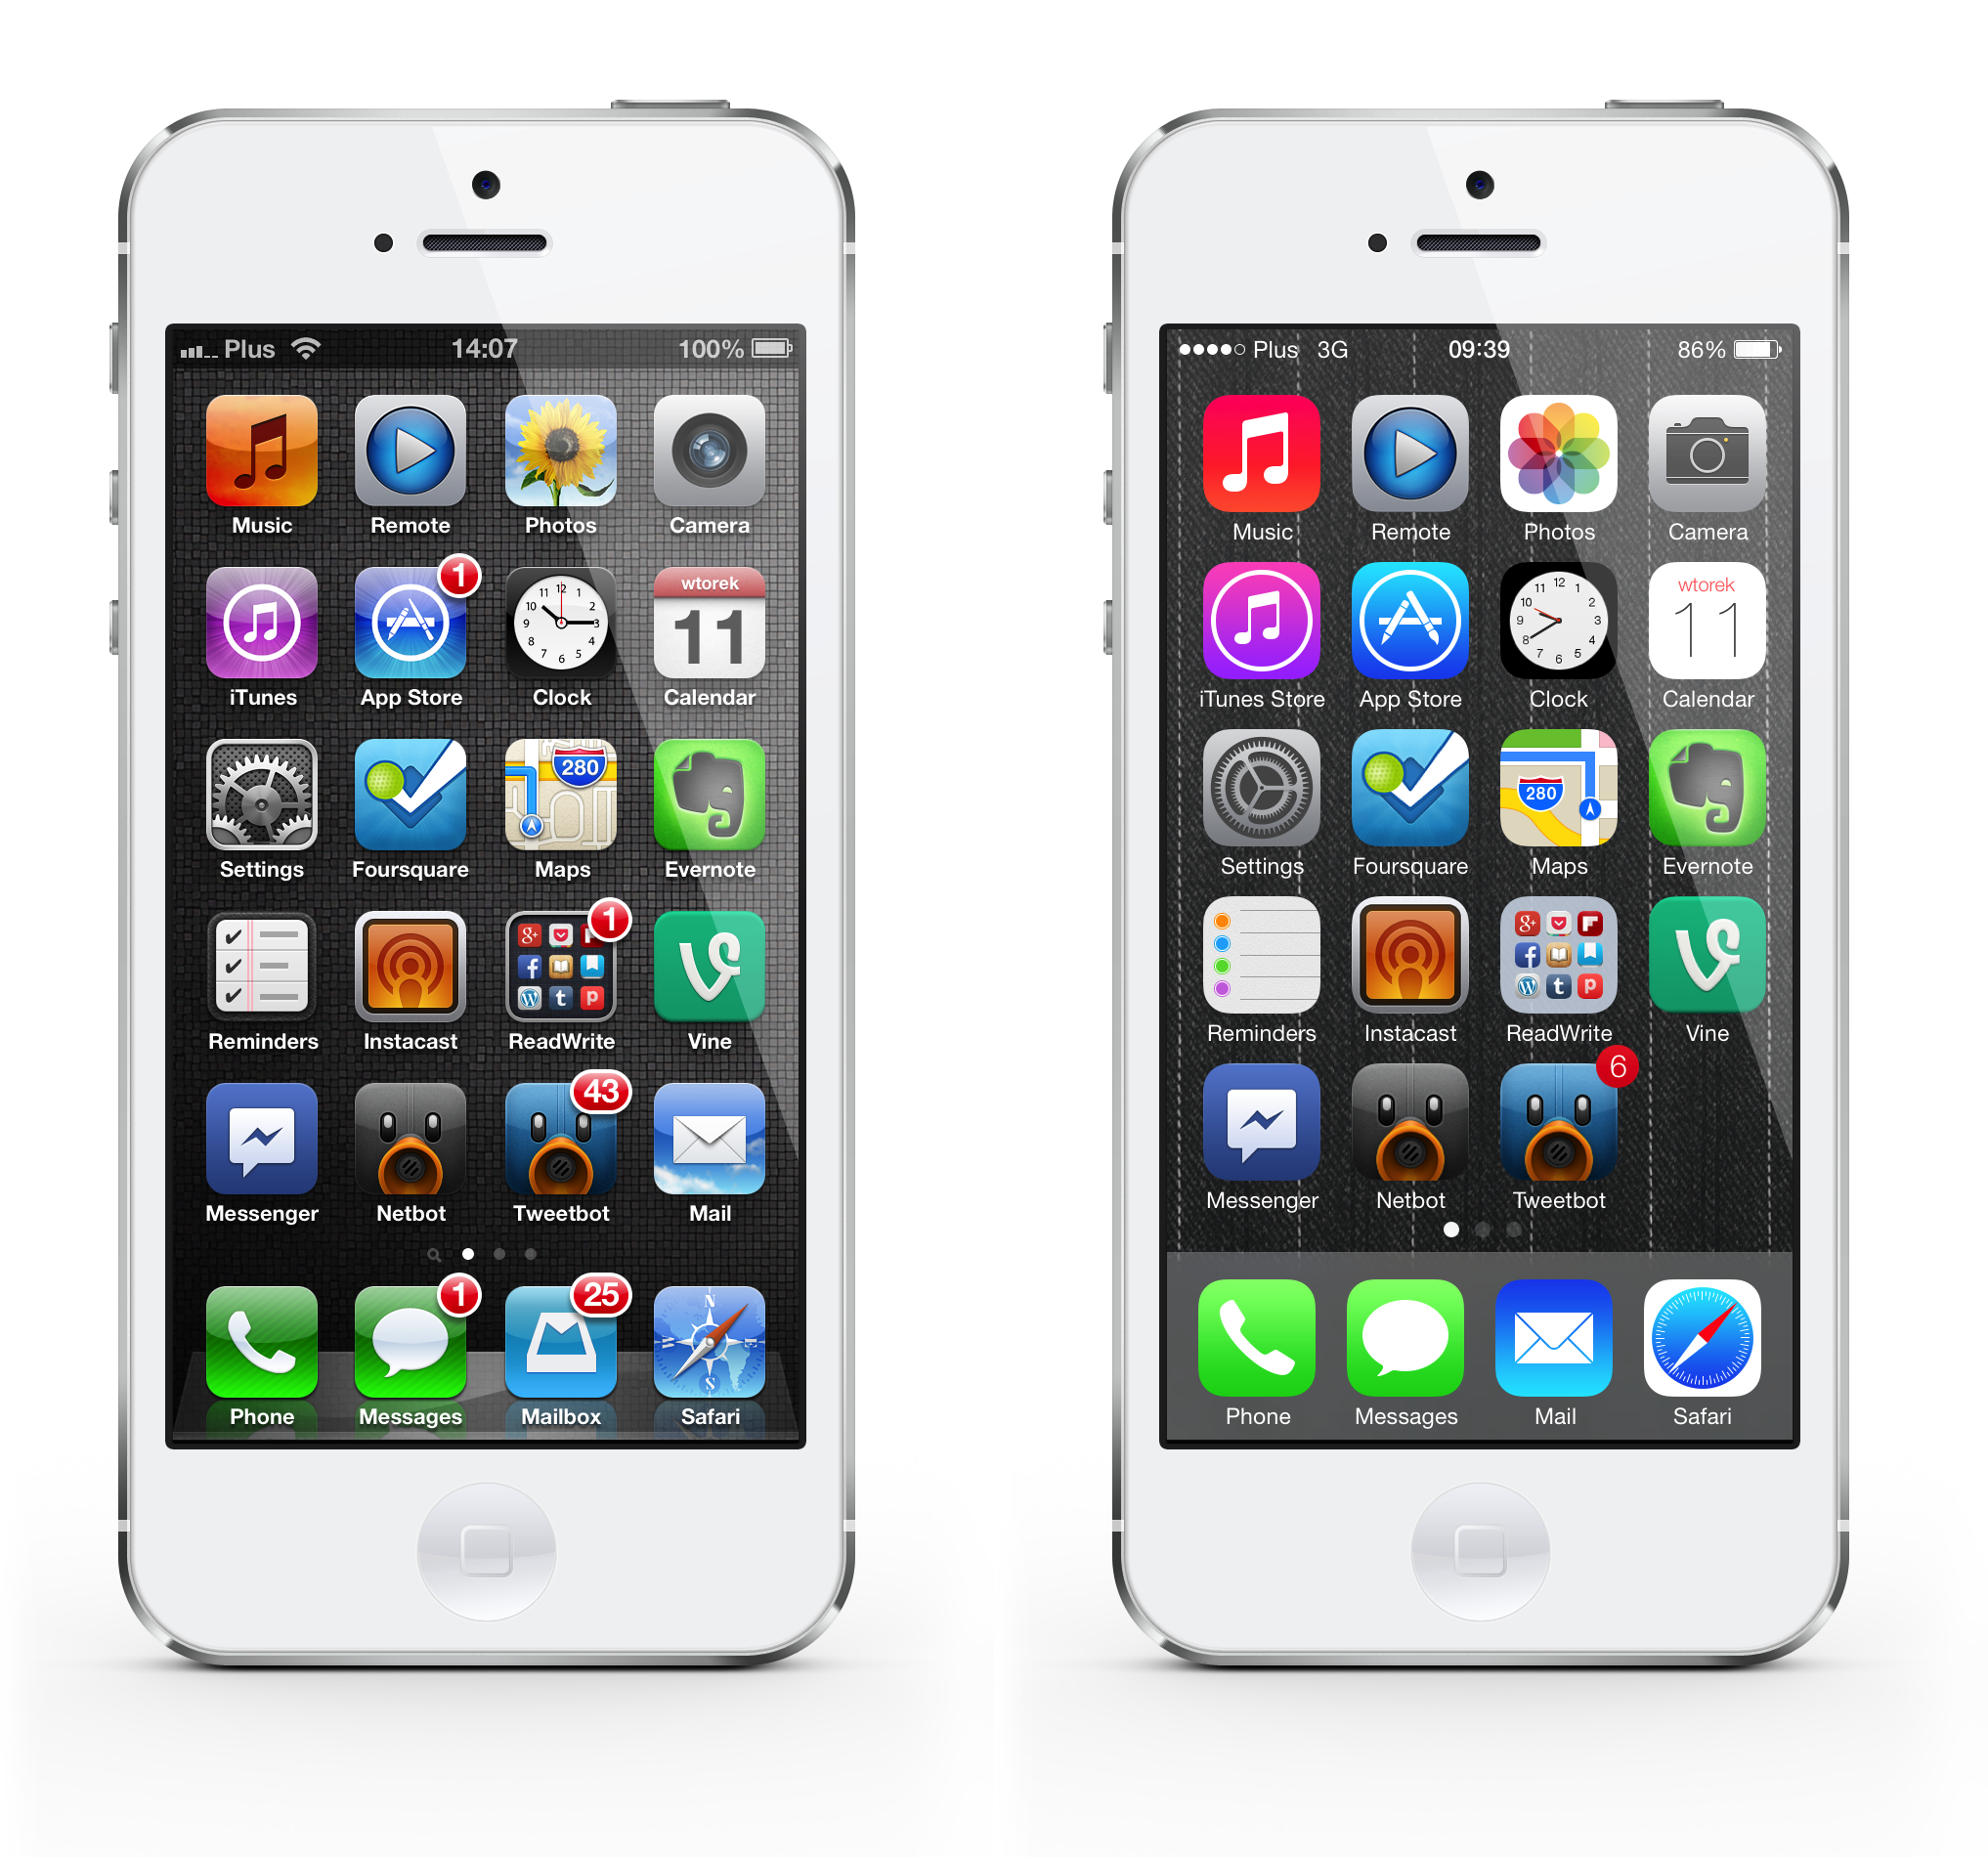 iOS 6 vs 7 homescreen